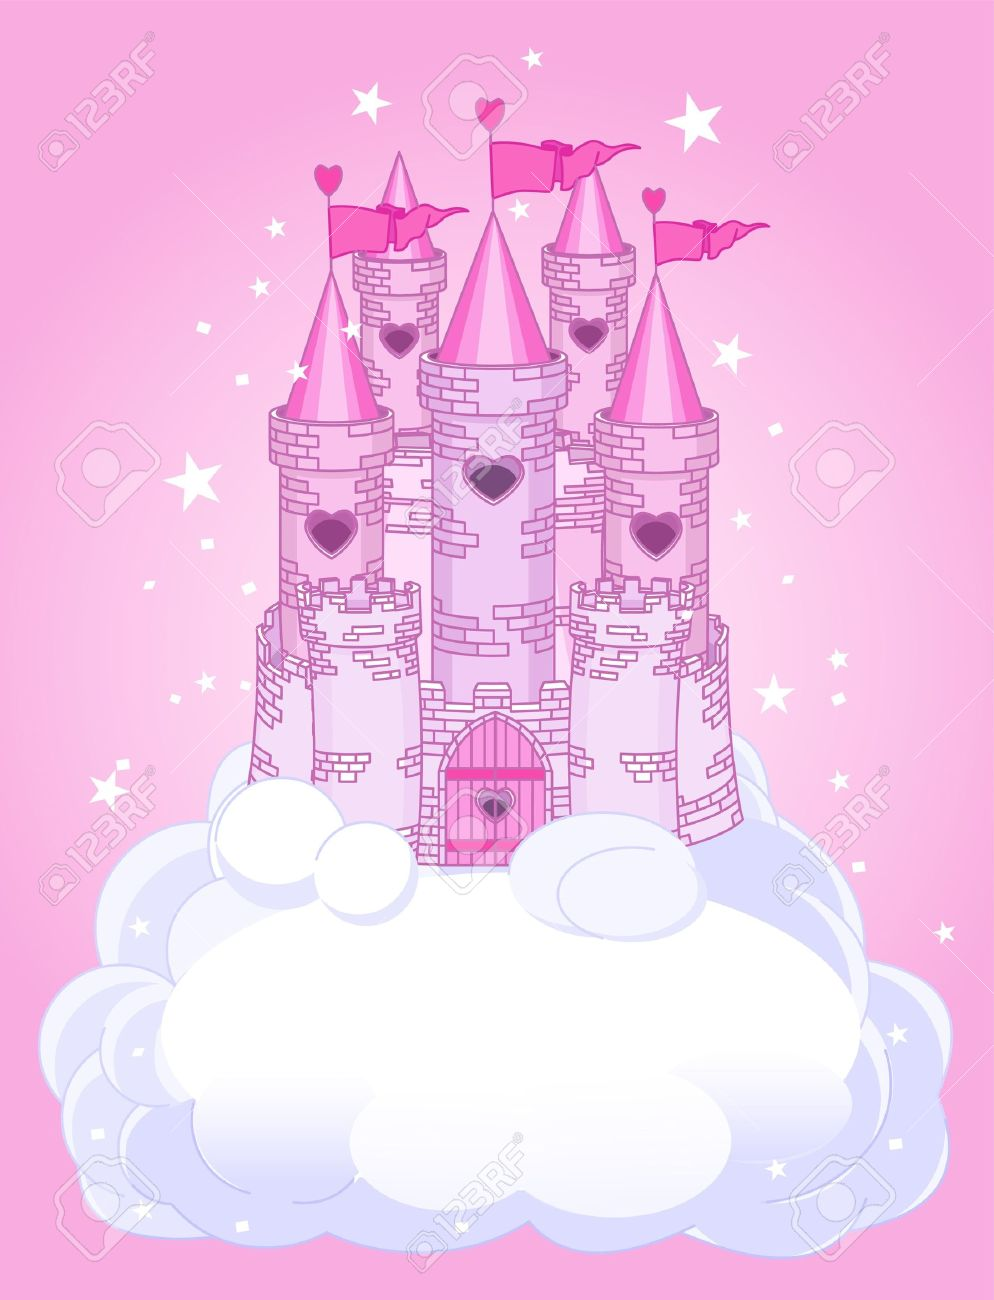 Illustration of a Fairy Tale princess castle in the sky Stock Vector - 7822793